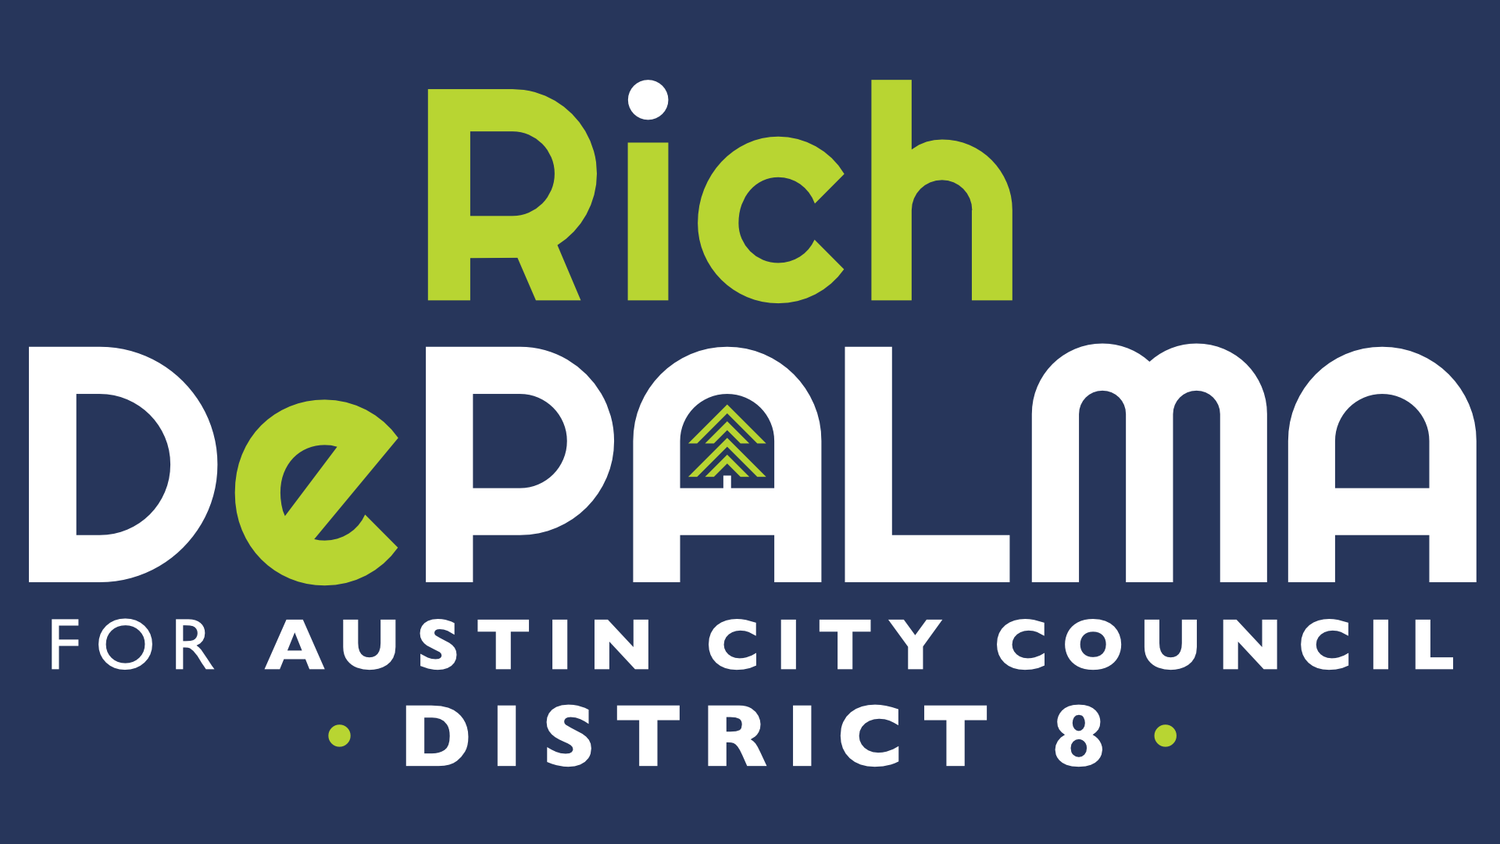 Rich DePalma for District 8